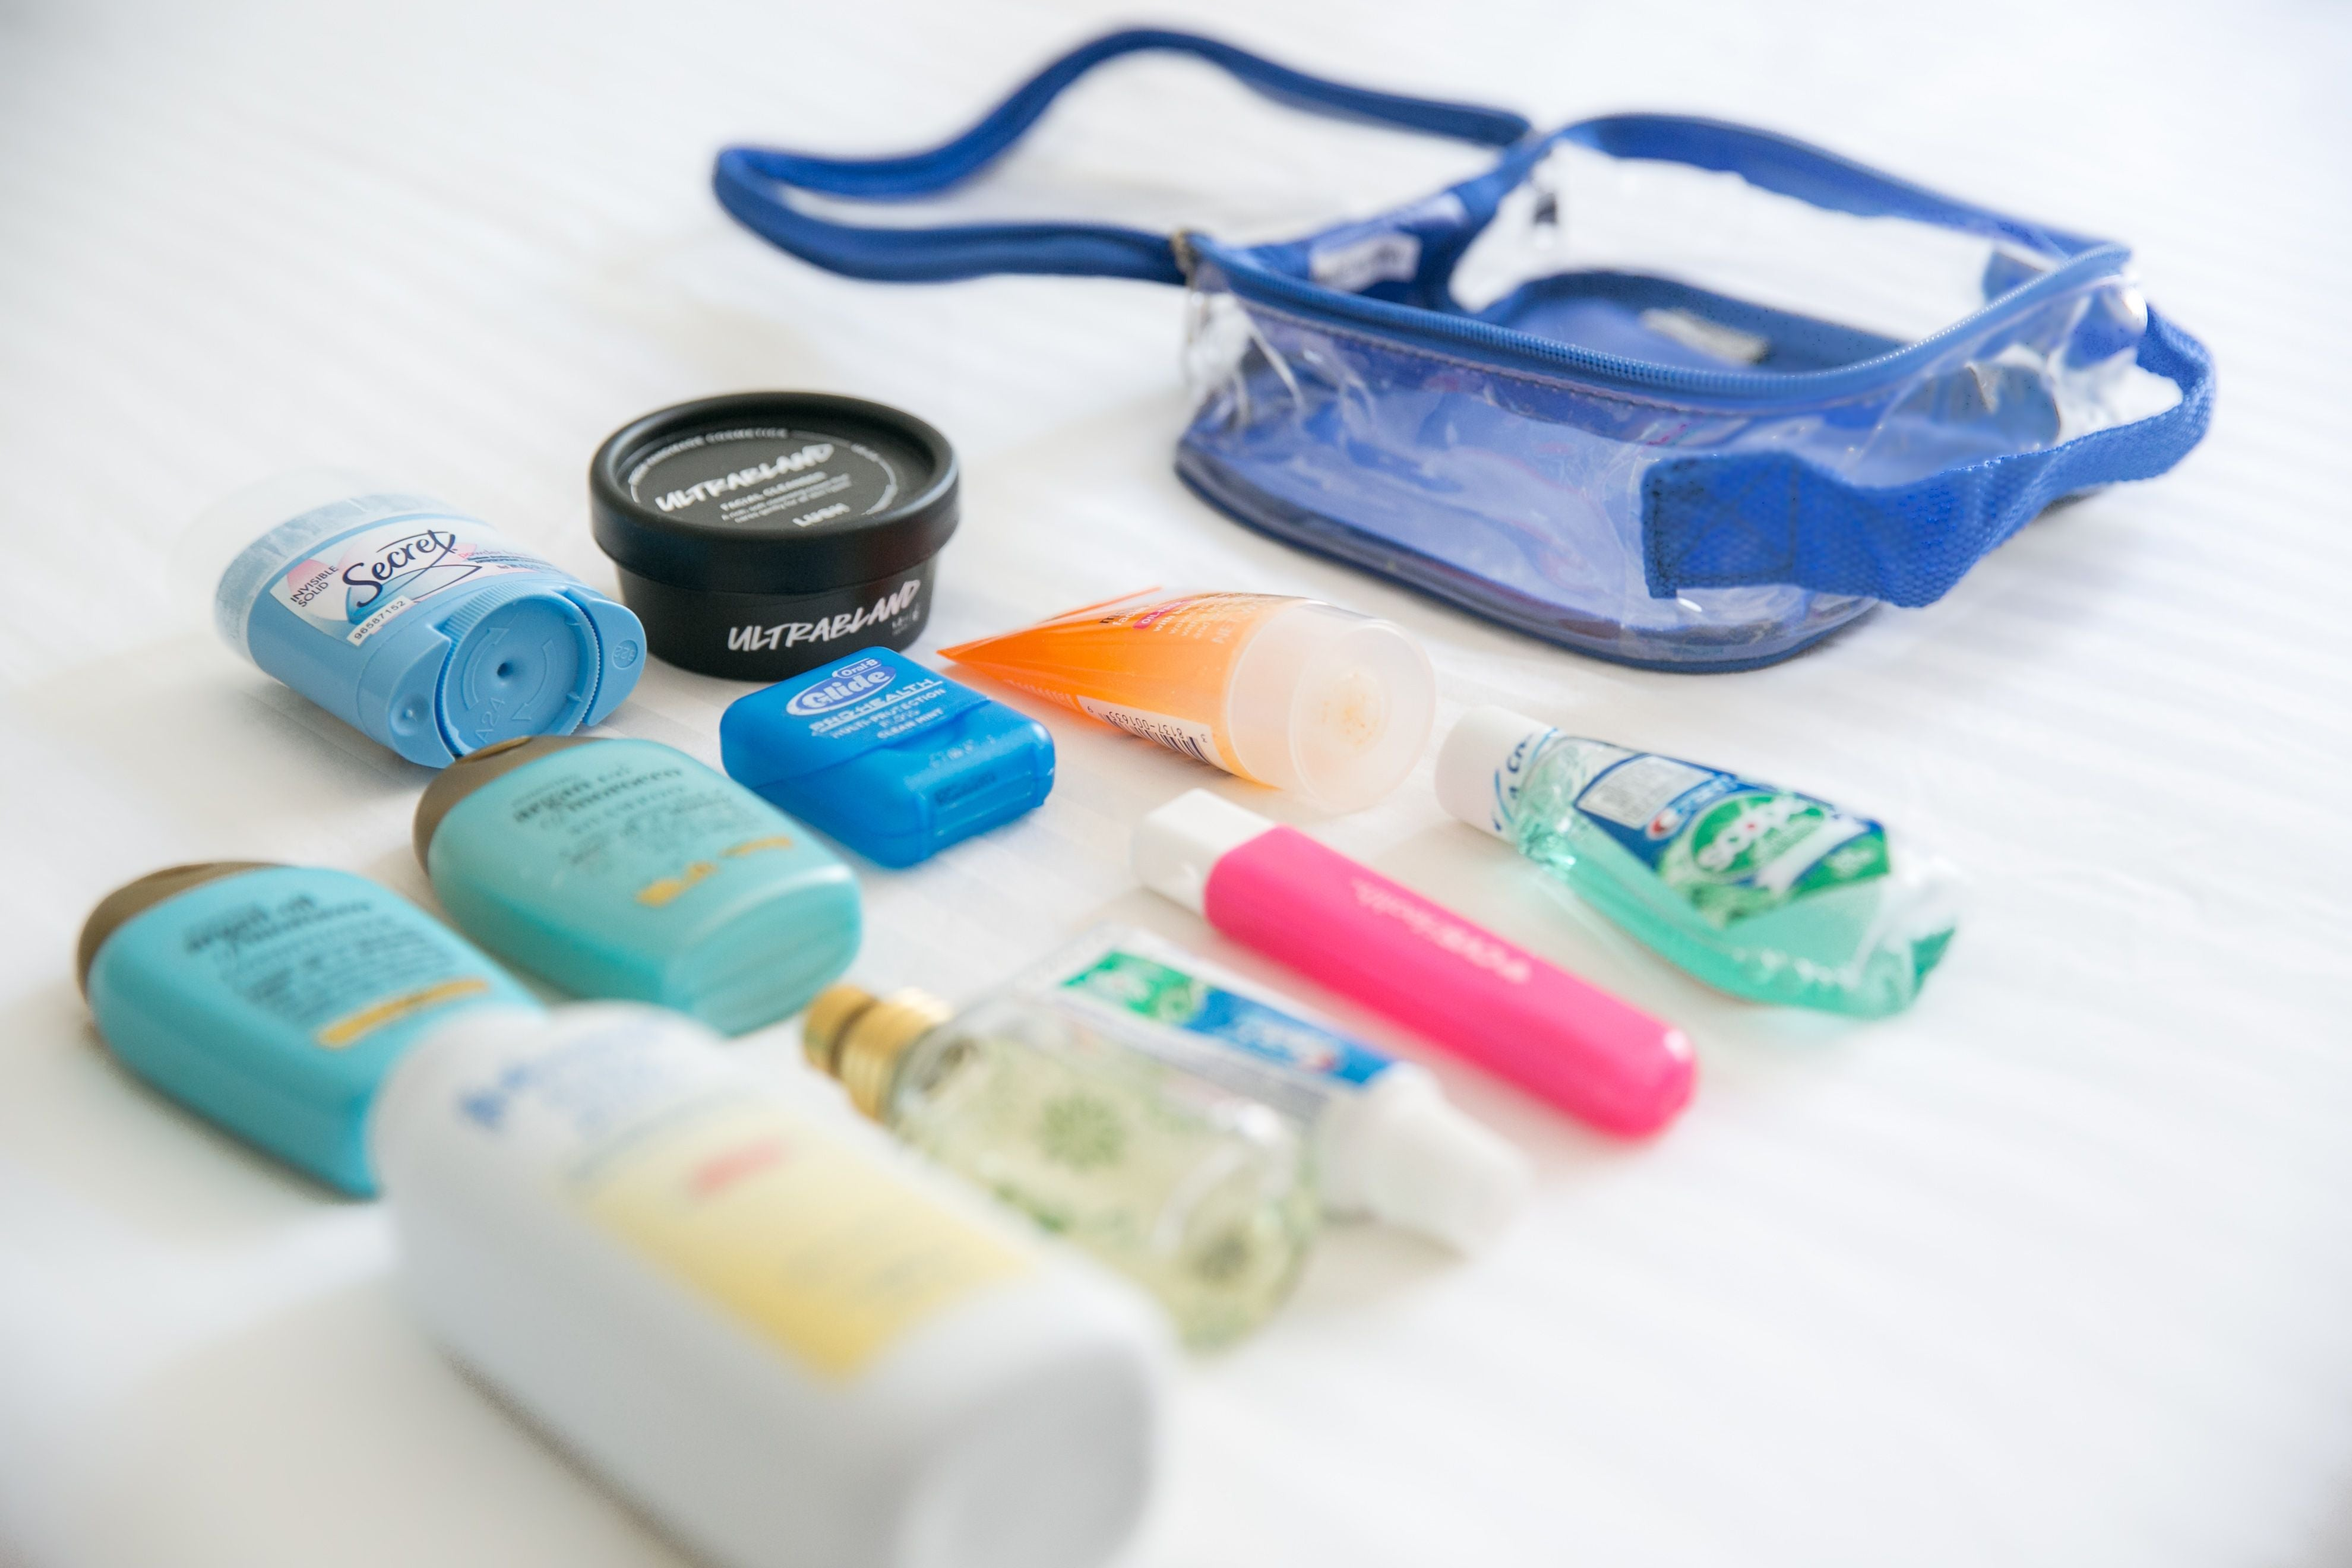 Unpacked travel size bottles and TSA approved toiletry bag